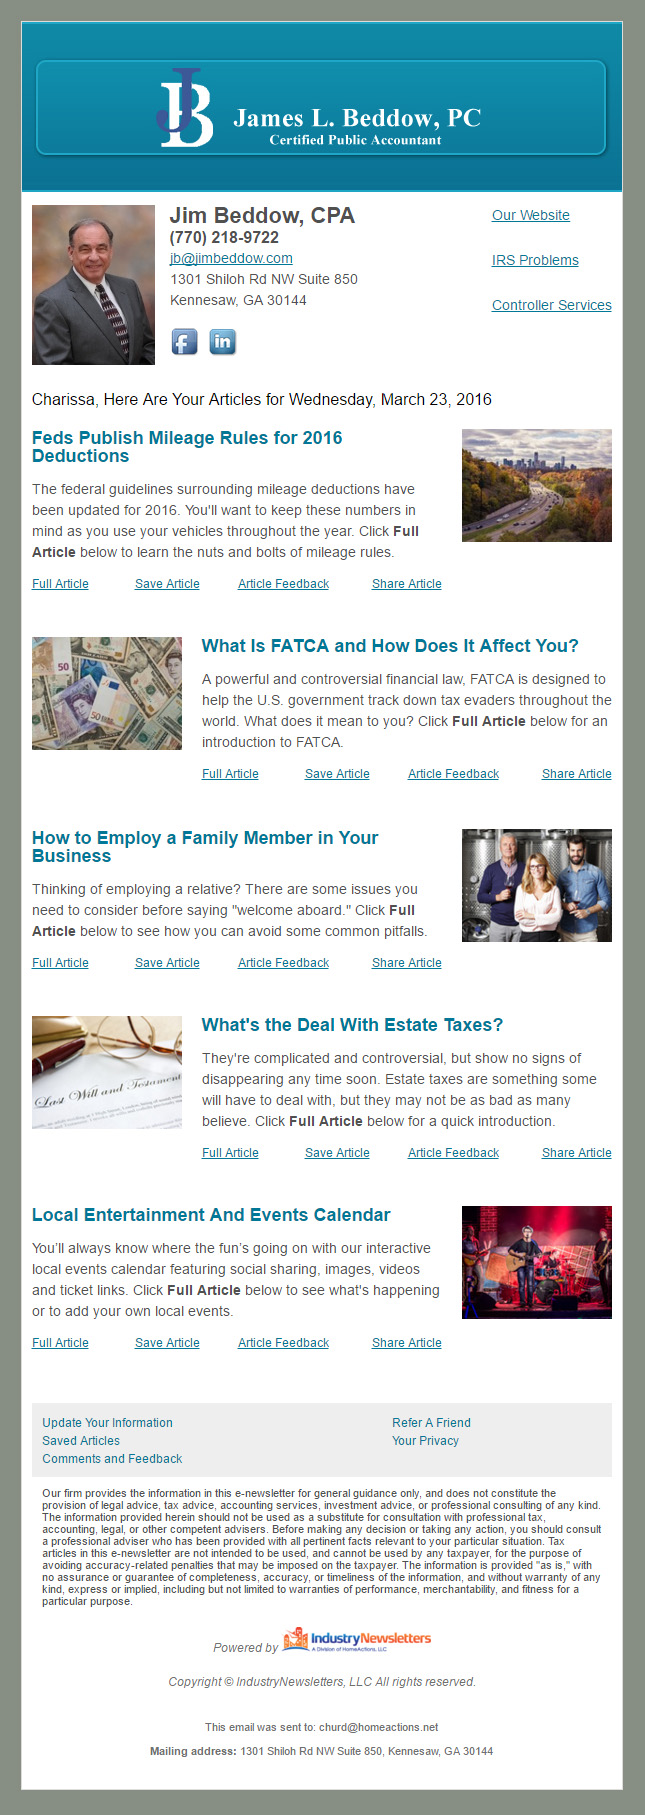 View a sample cpa email newsletter industrynewsletters go back to the previous page thecheapjerseys Choice Image